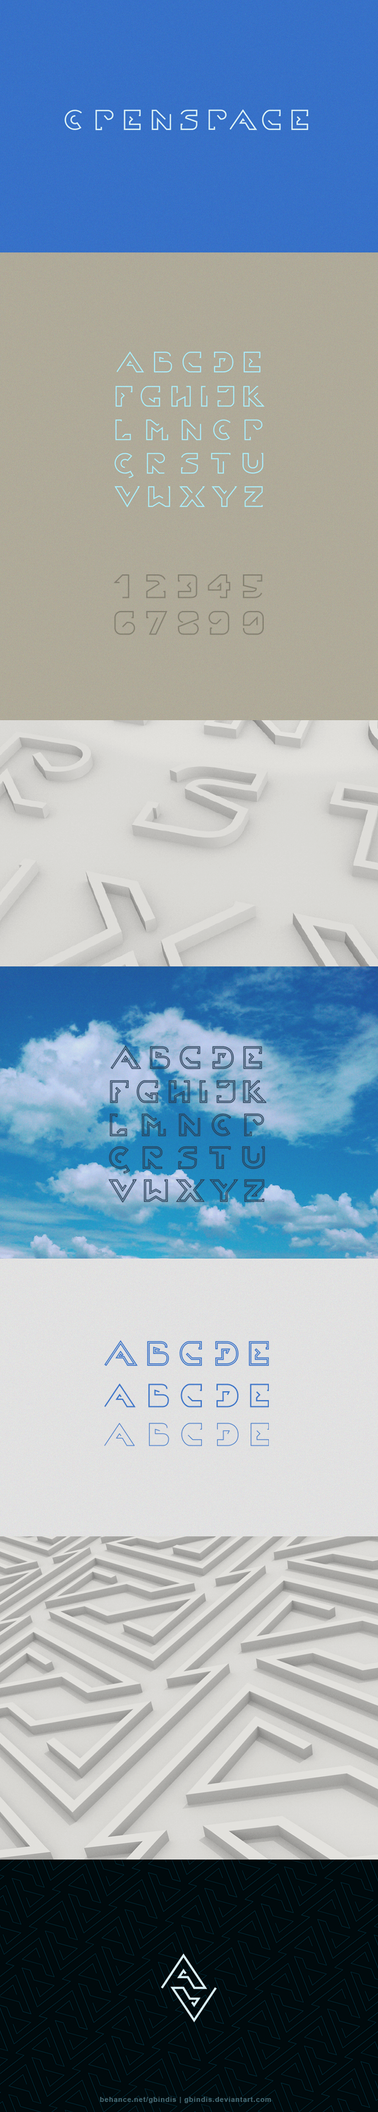 Openspace font design by gbindis